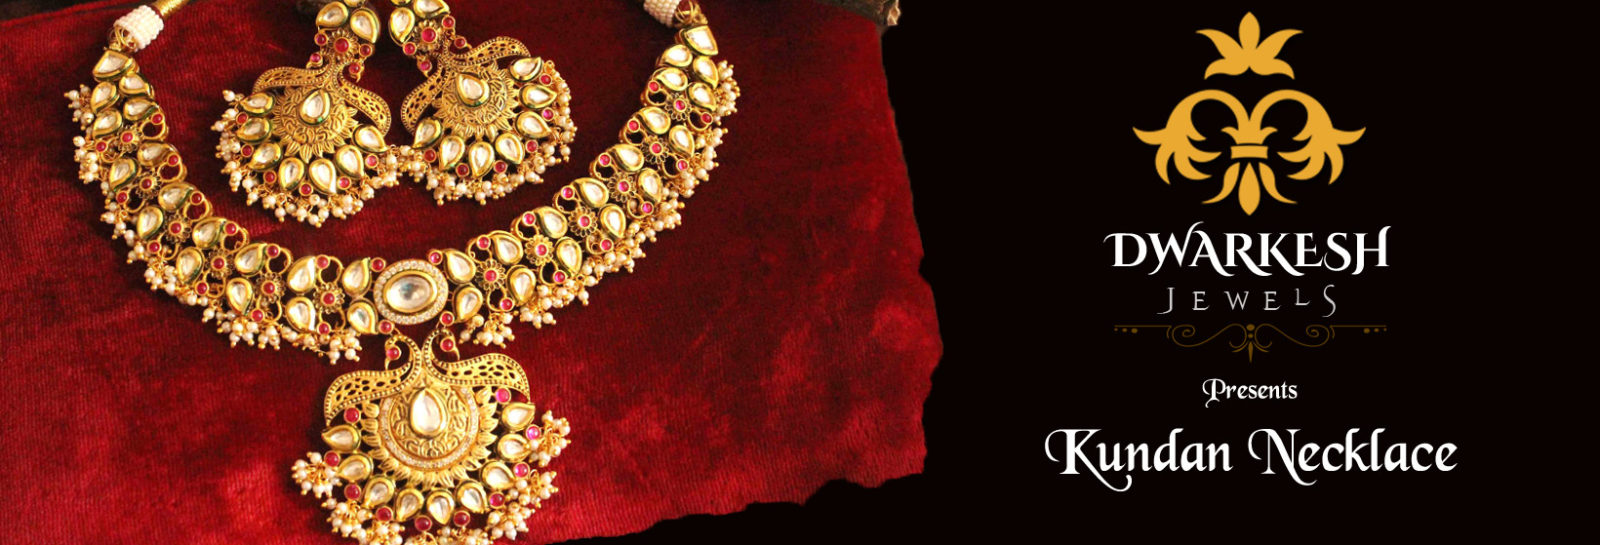 Dwarkesh Jewels - Kundan Designer Necklace